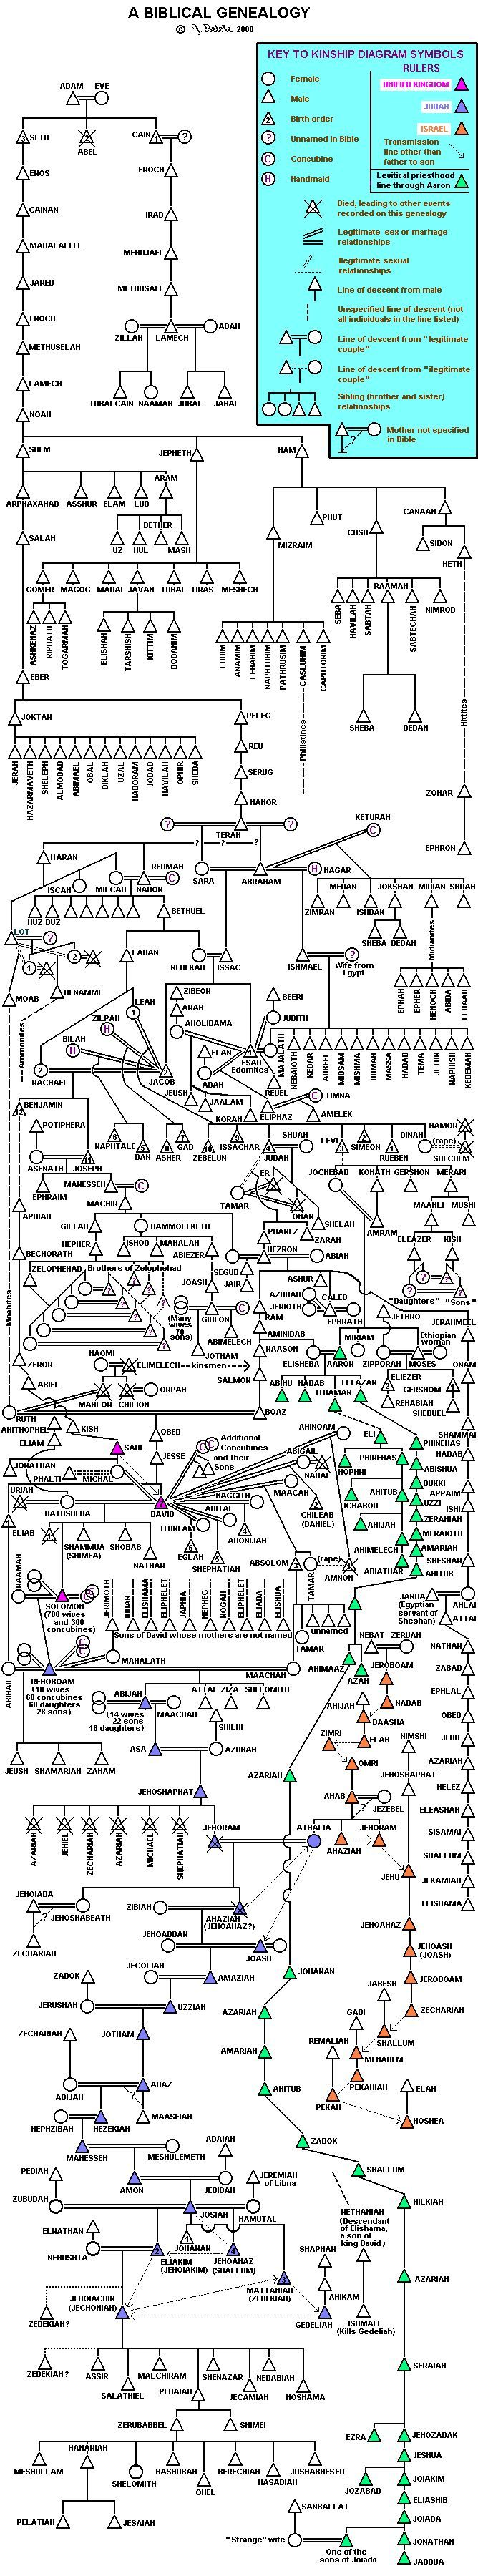 Bible Geneology diagram... i have to pin just look at it later wow this is great...wow - Picmia